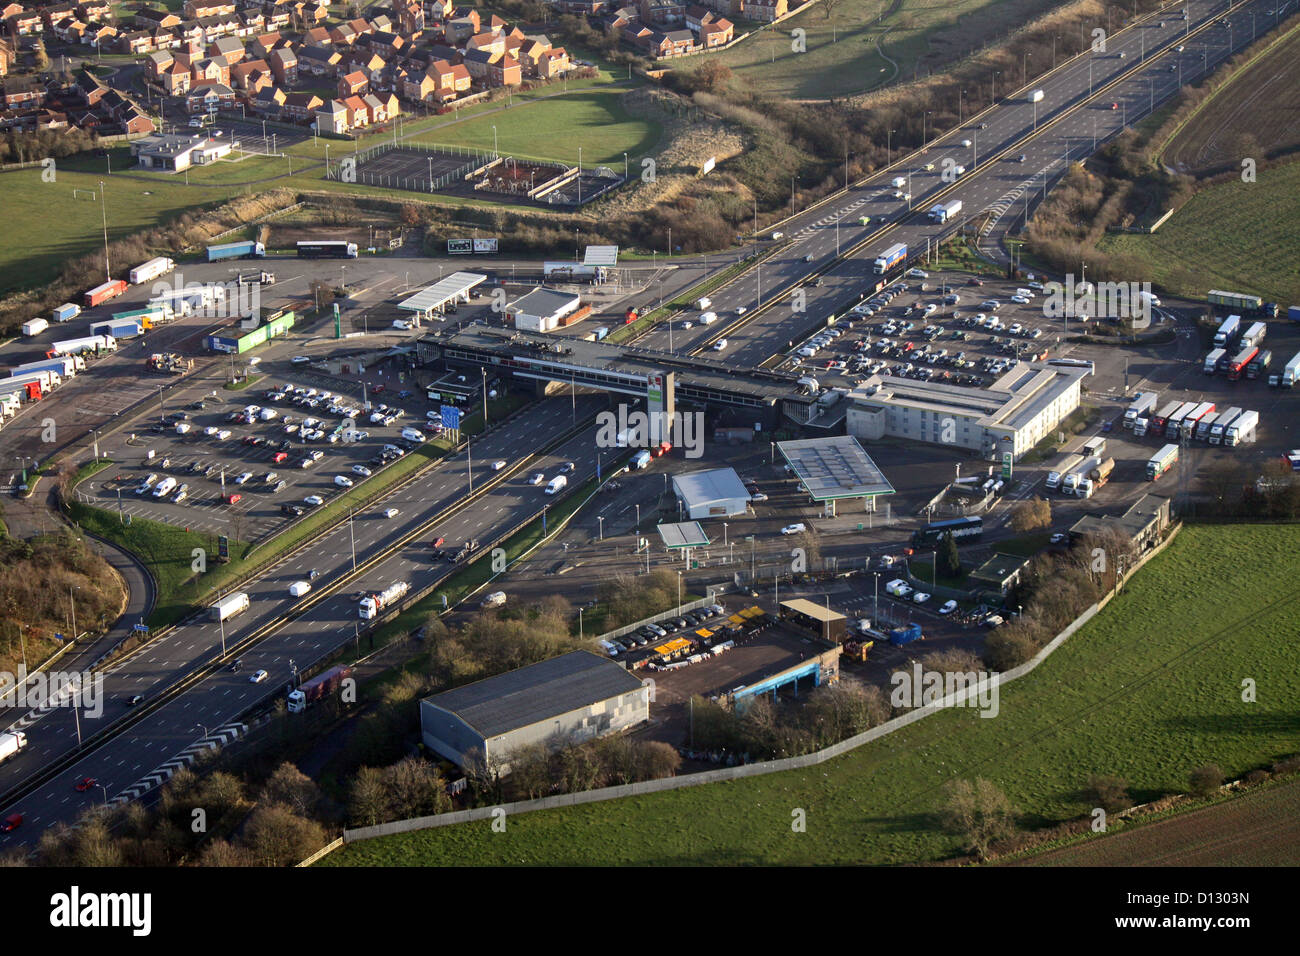 aerial view of Leicester Forest East motorway services on the M1 - Stock Image